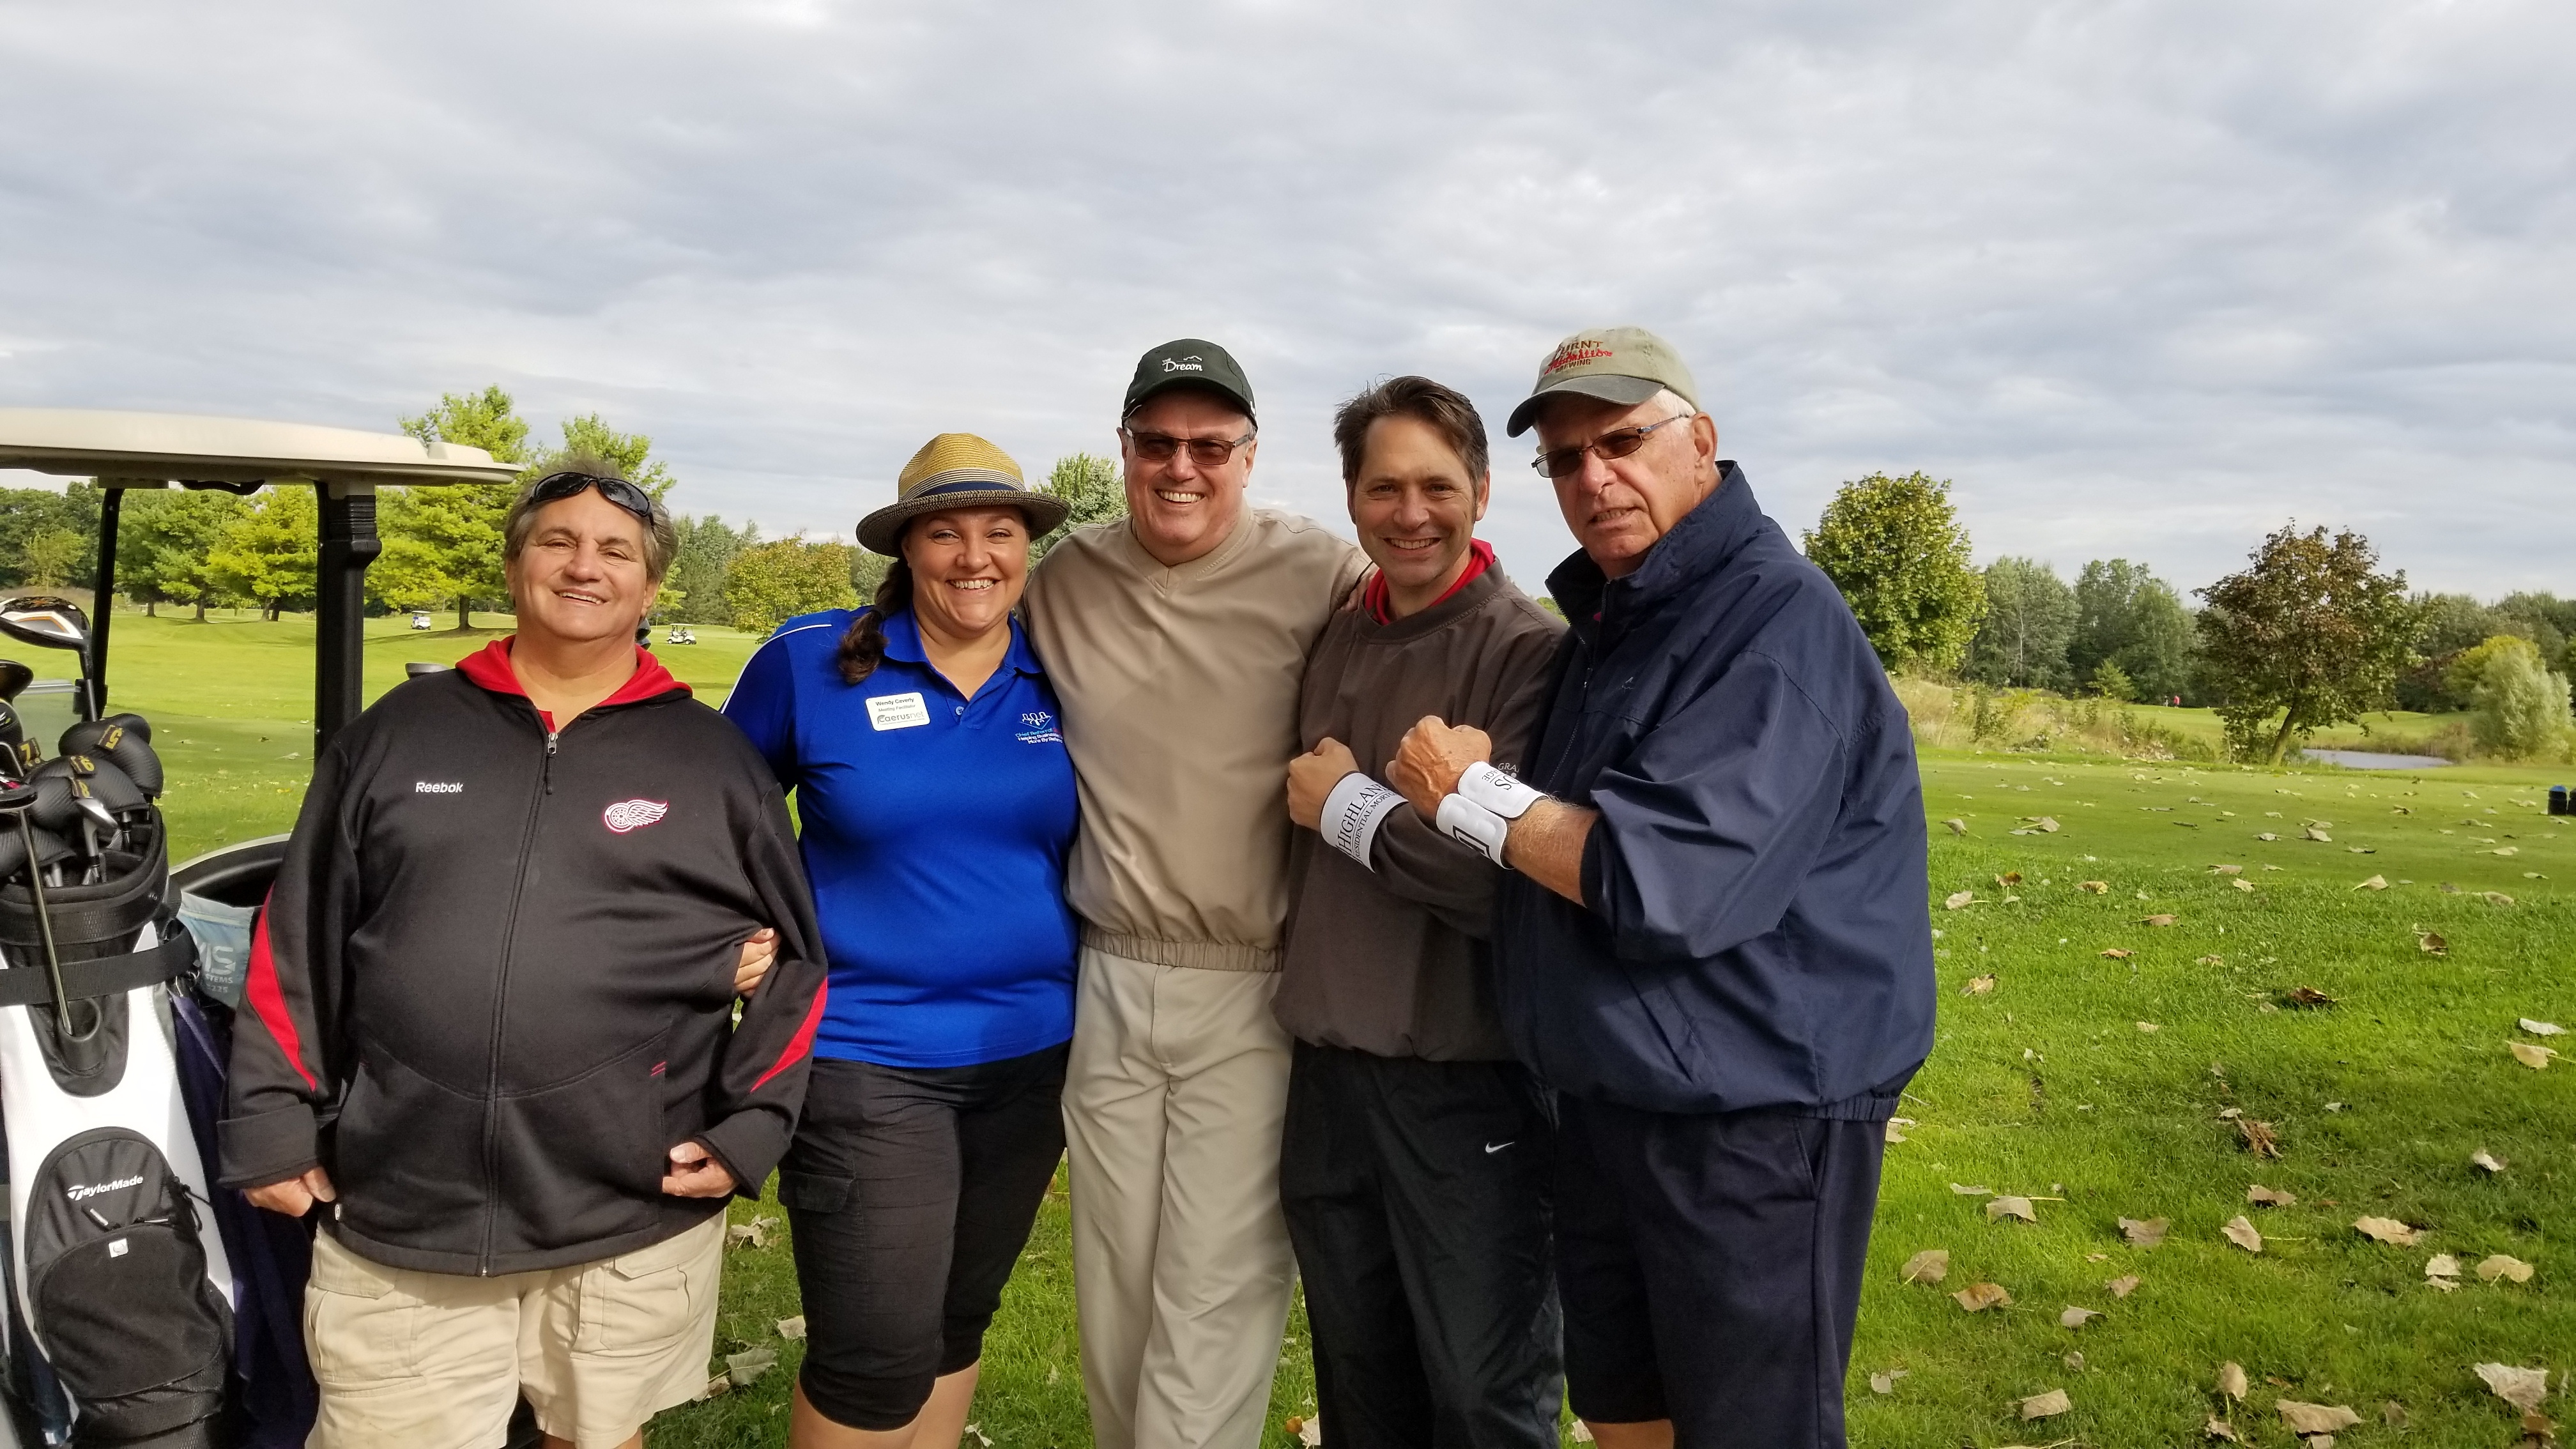 Caerusnet/Networking 2021 Outing gallery image #10